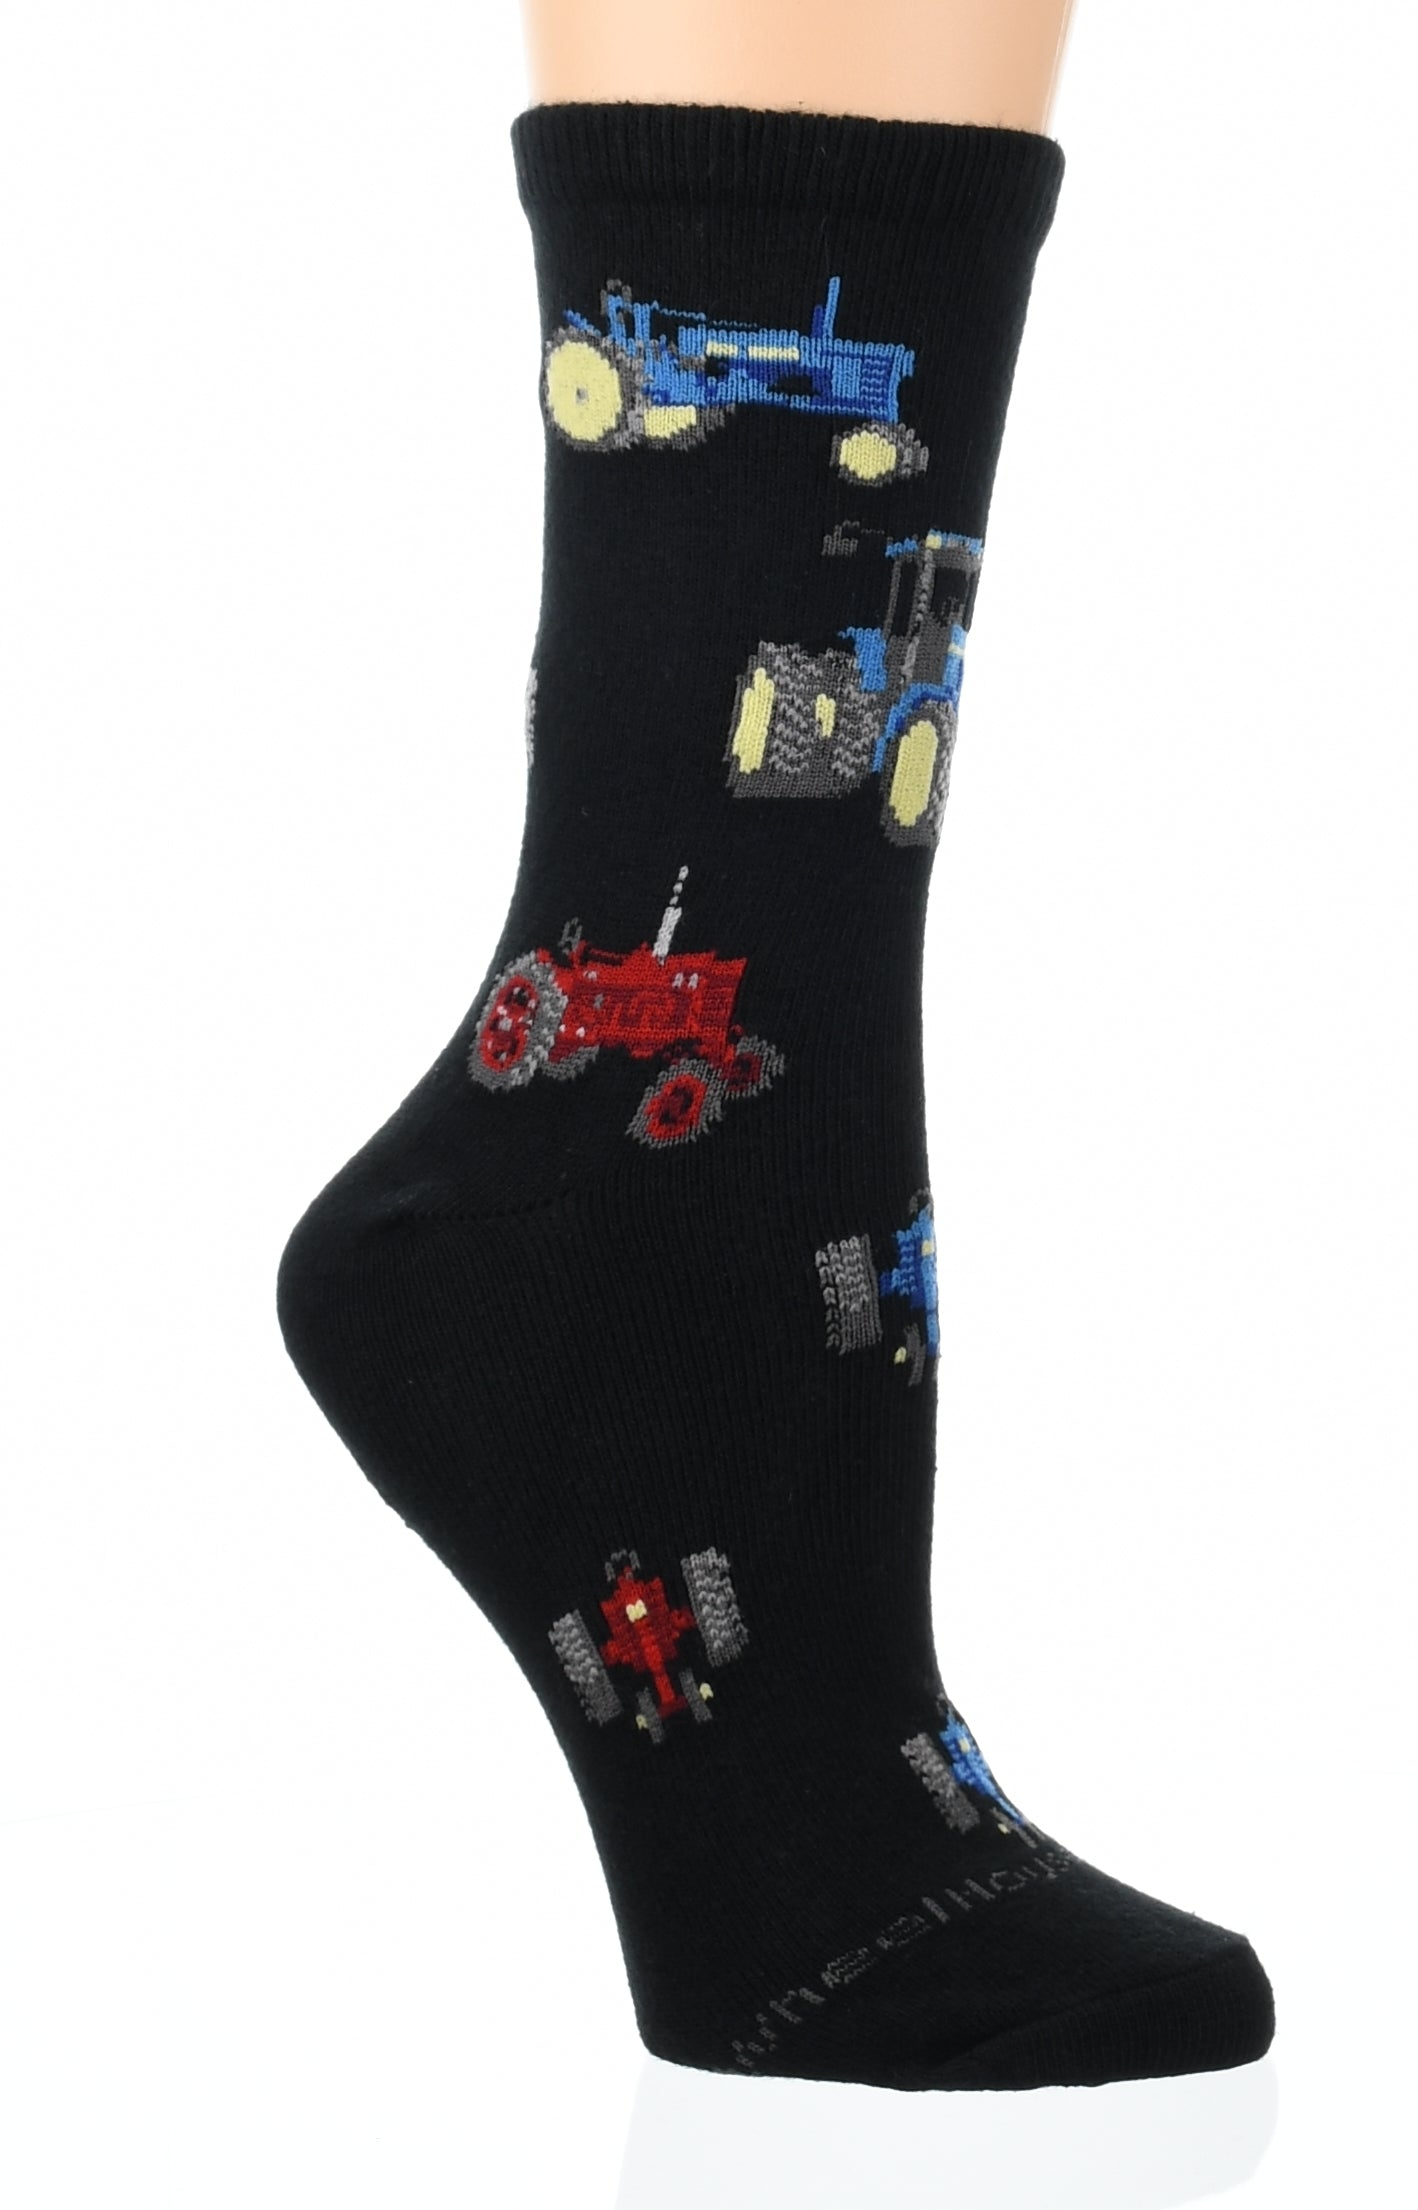 Red and Blue Tractors Crew Sock on Black